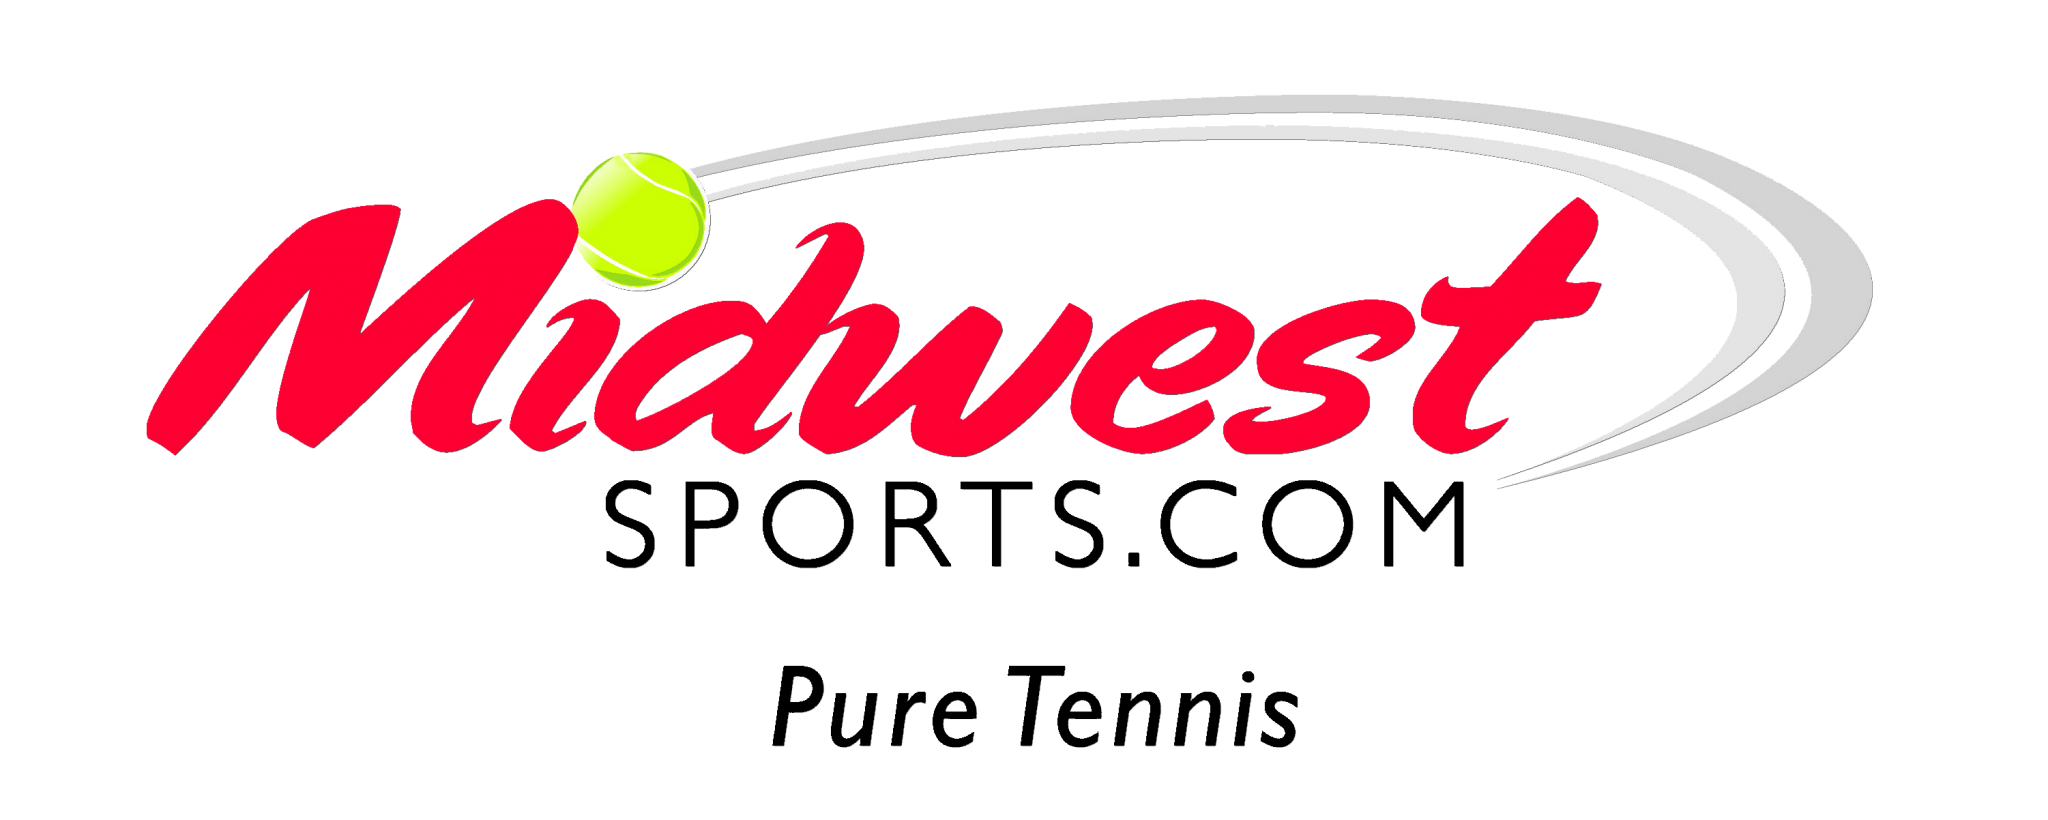 Midwest logo.